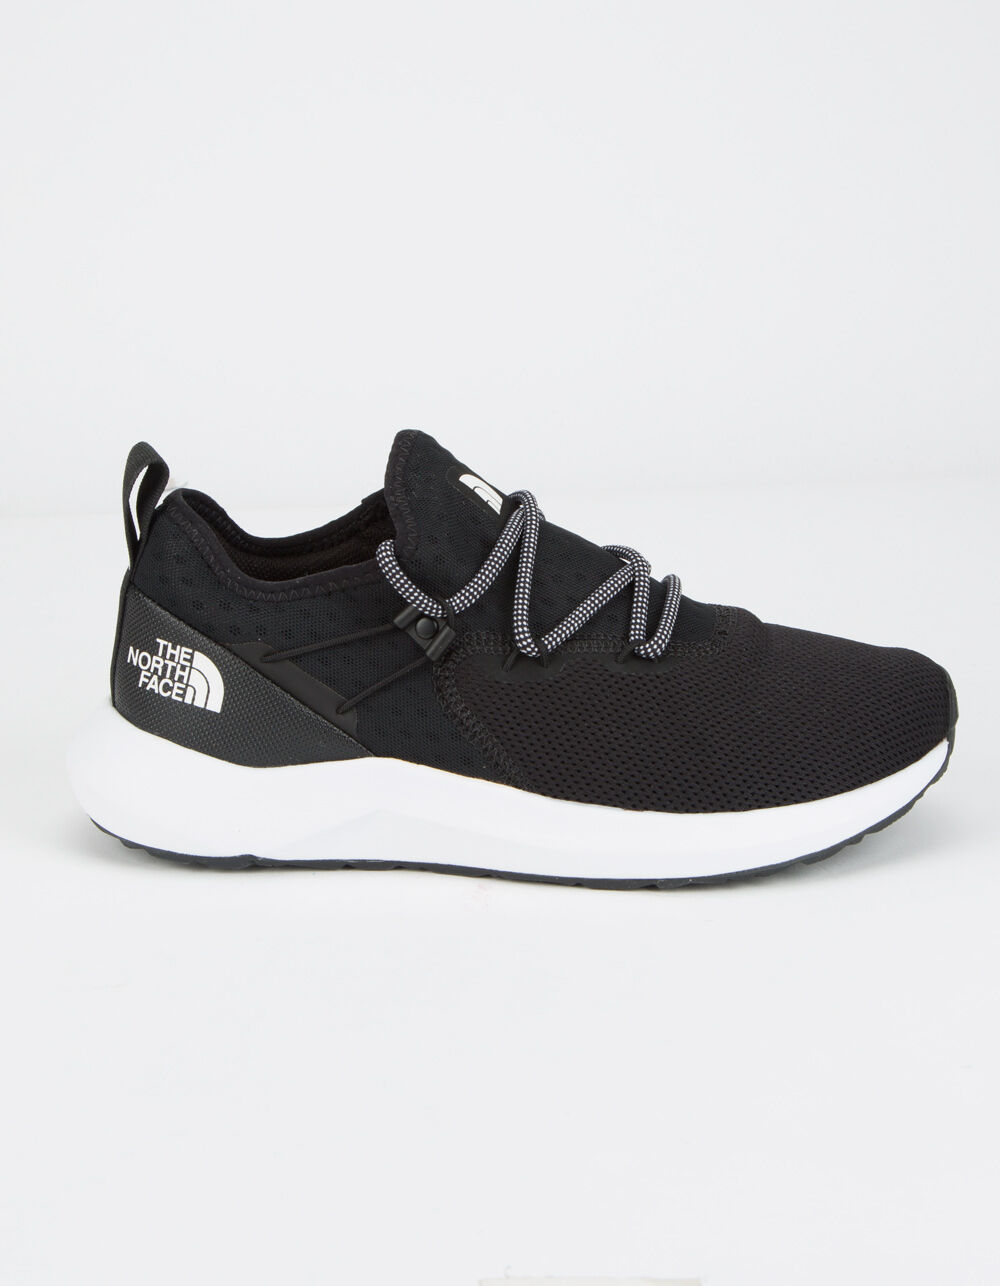 THE NORTH FACE Surge Highgate Black Shoes